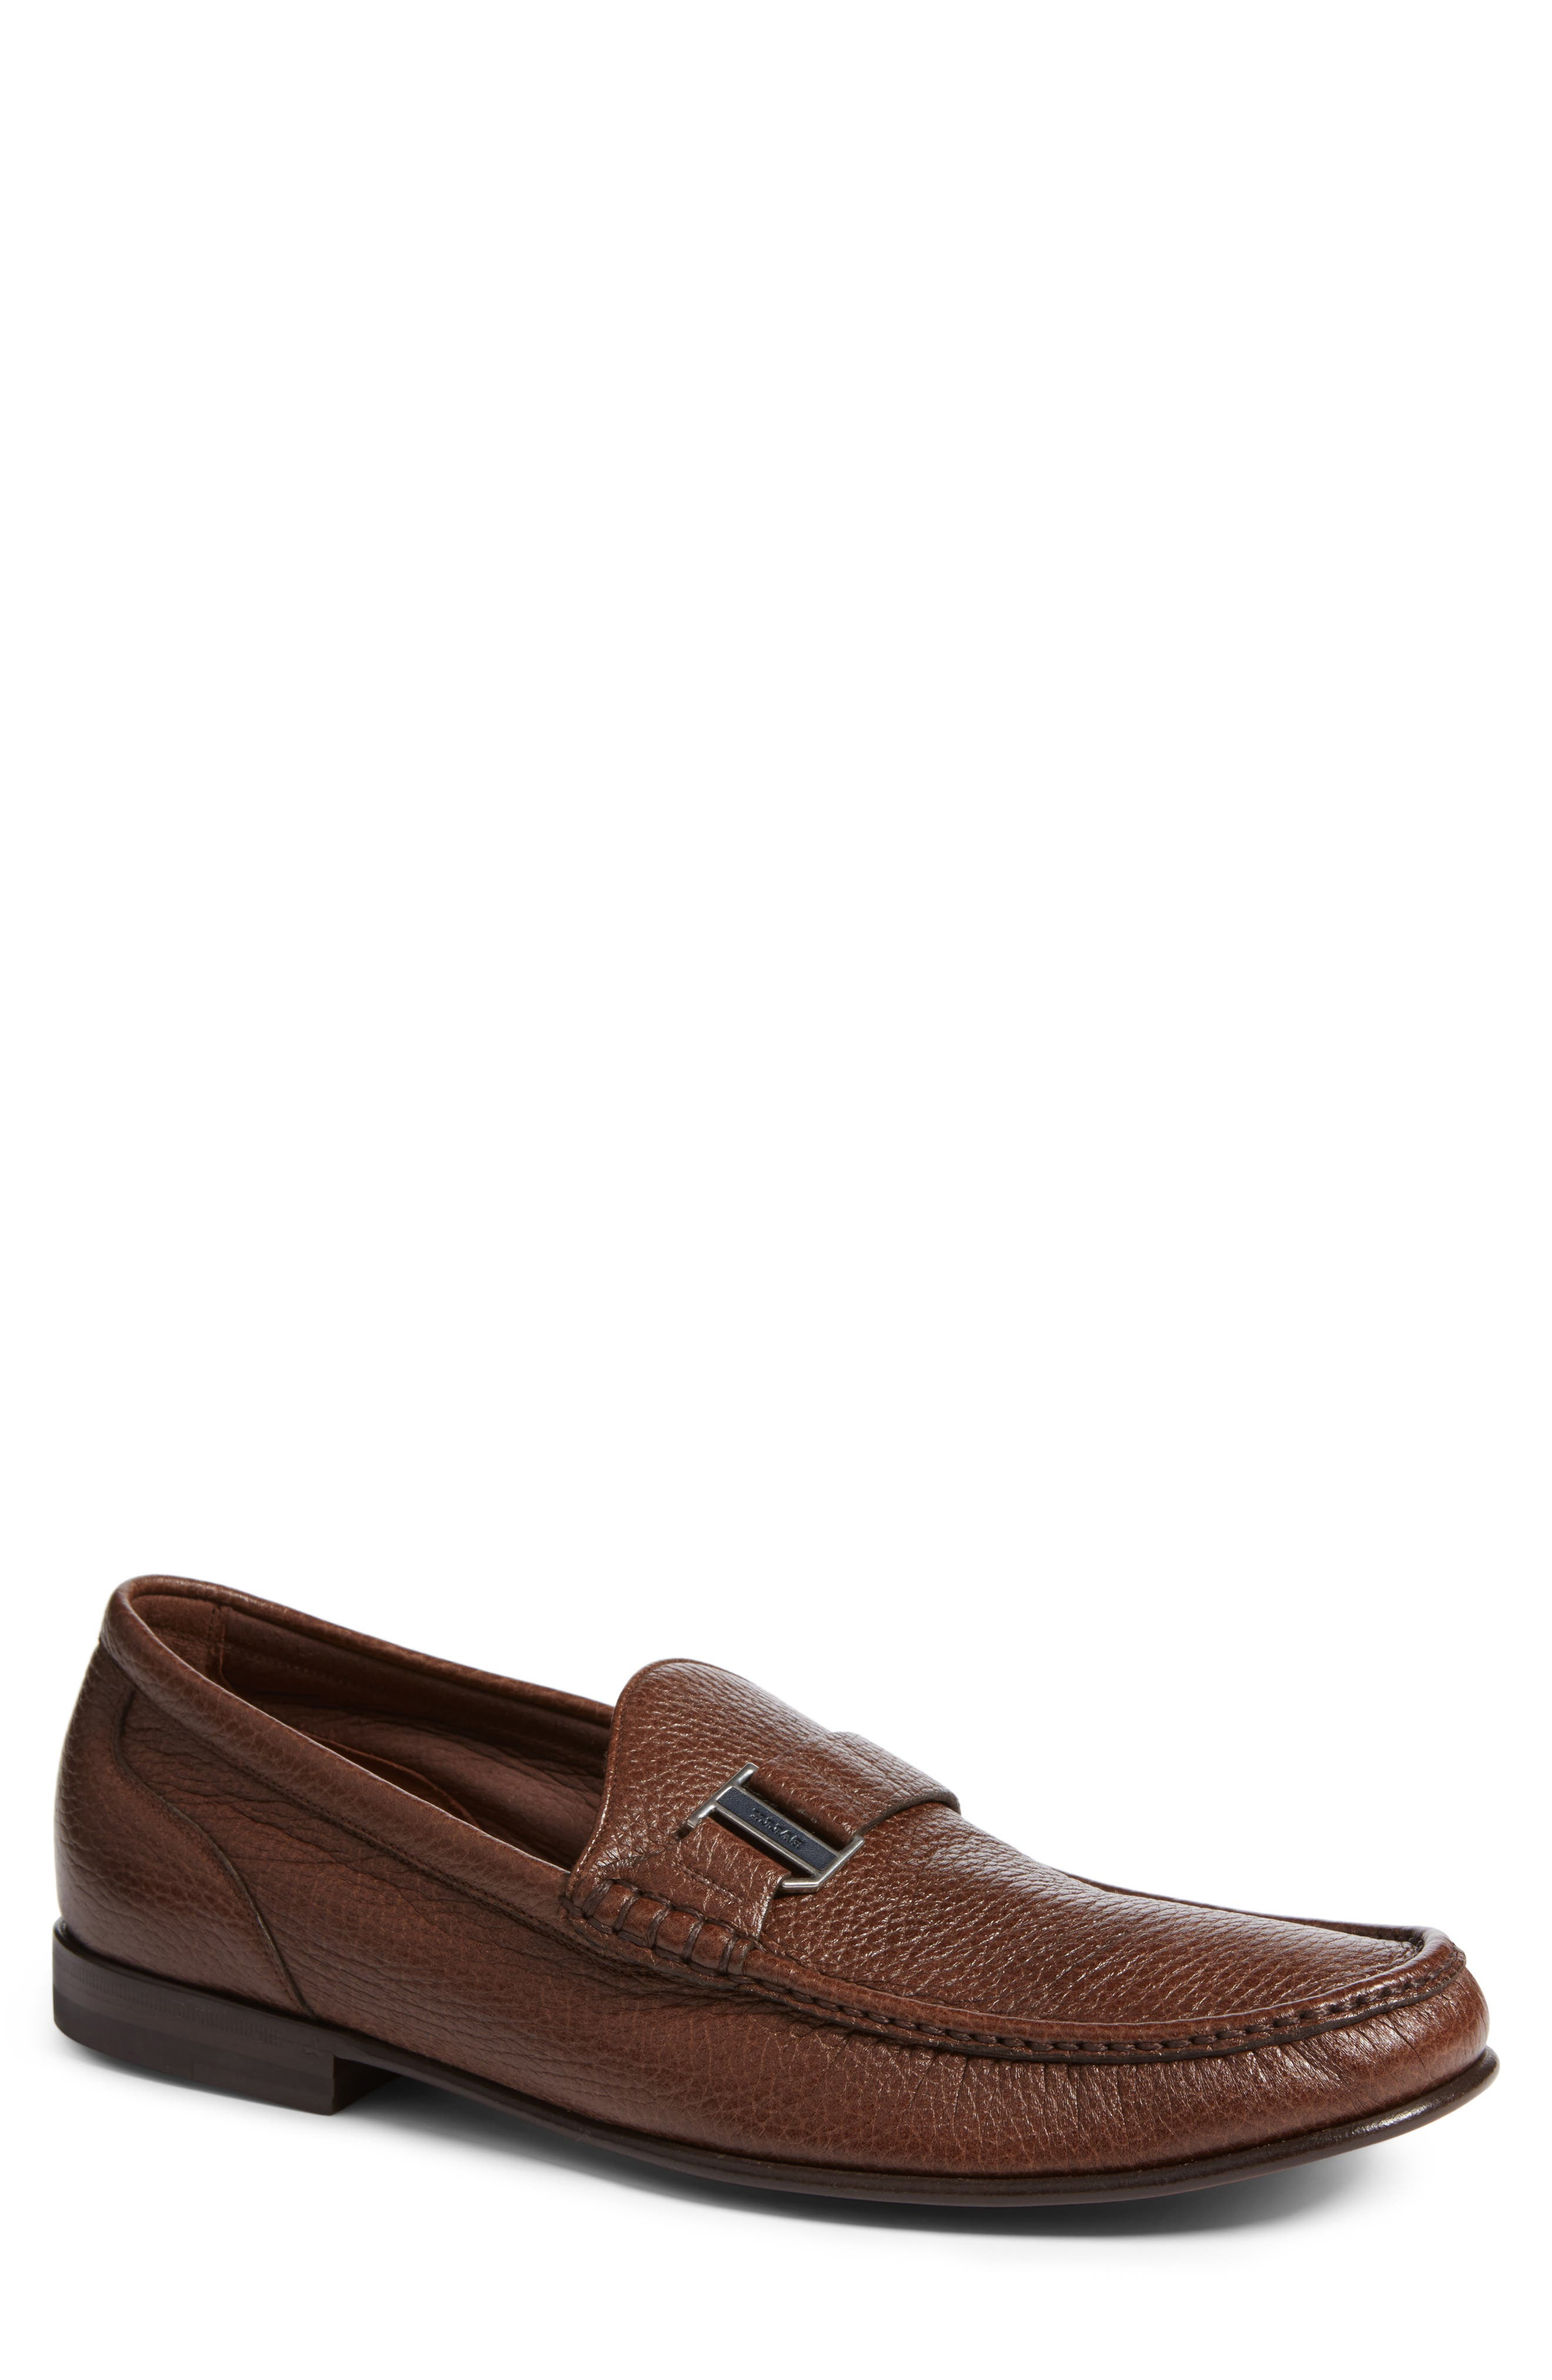 Main Image - Bally Suver Loafer (Men)